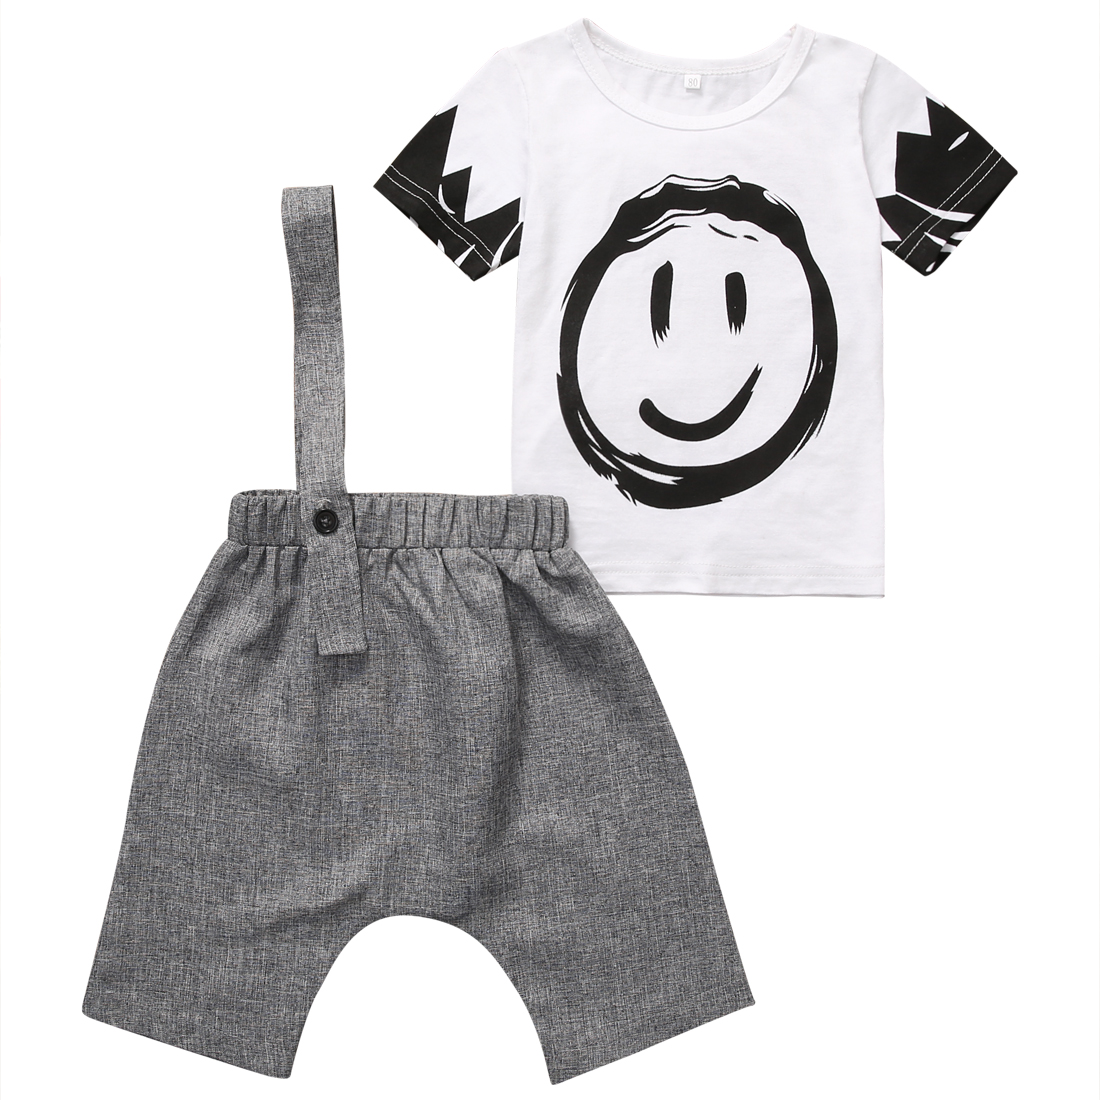 Summer 2018 Newborn Baby Boy Clothes Short Sleeve Cotton T-shirt Tops + Harem Overalls 2PCS Outfit Toddler Kids Clothing Set infant baby boy girl 2pcs clothes set kids short sleeve you serious clark letters romper tops car print pants 2pcs outfit set